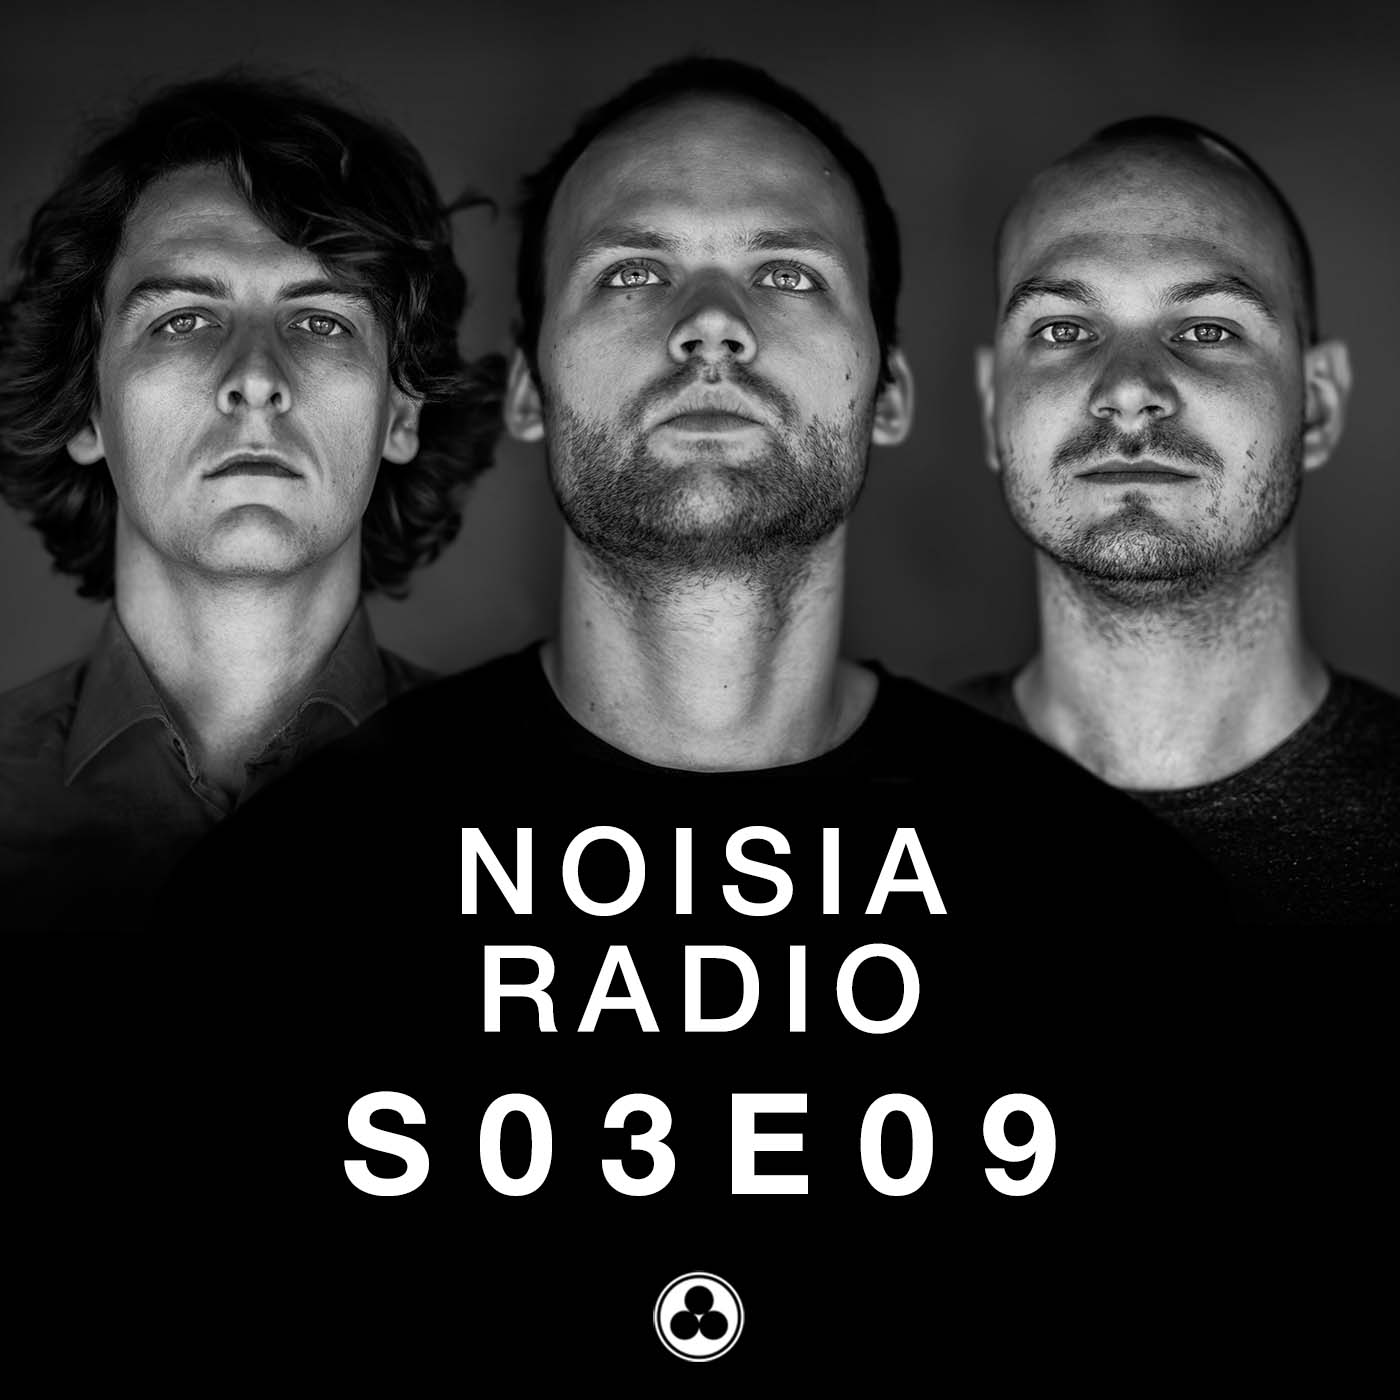 Noisia Radio S03E09